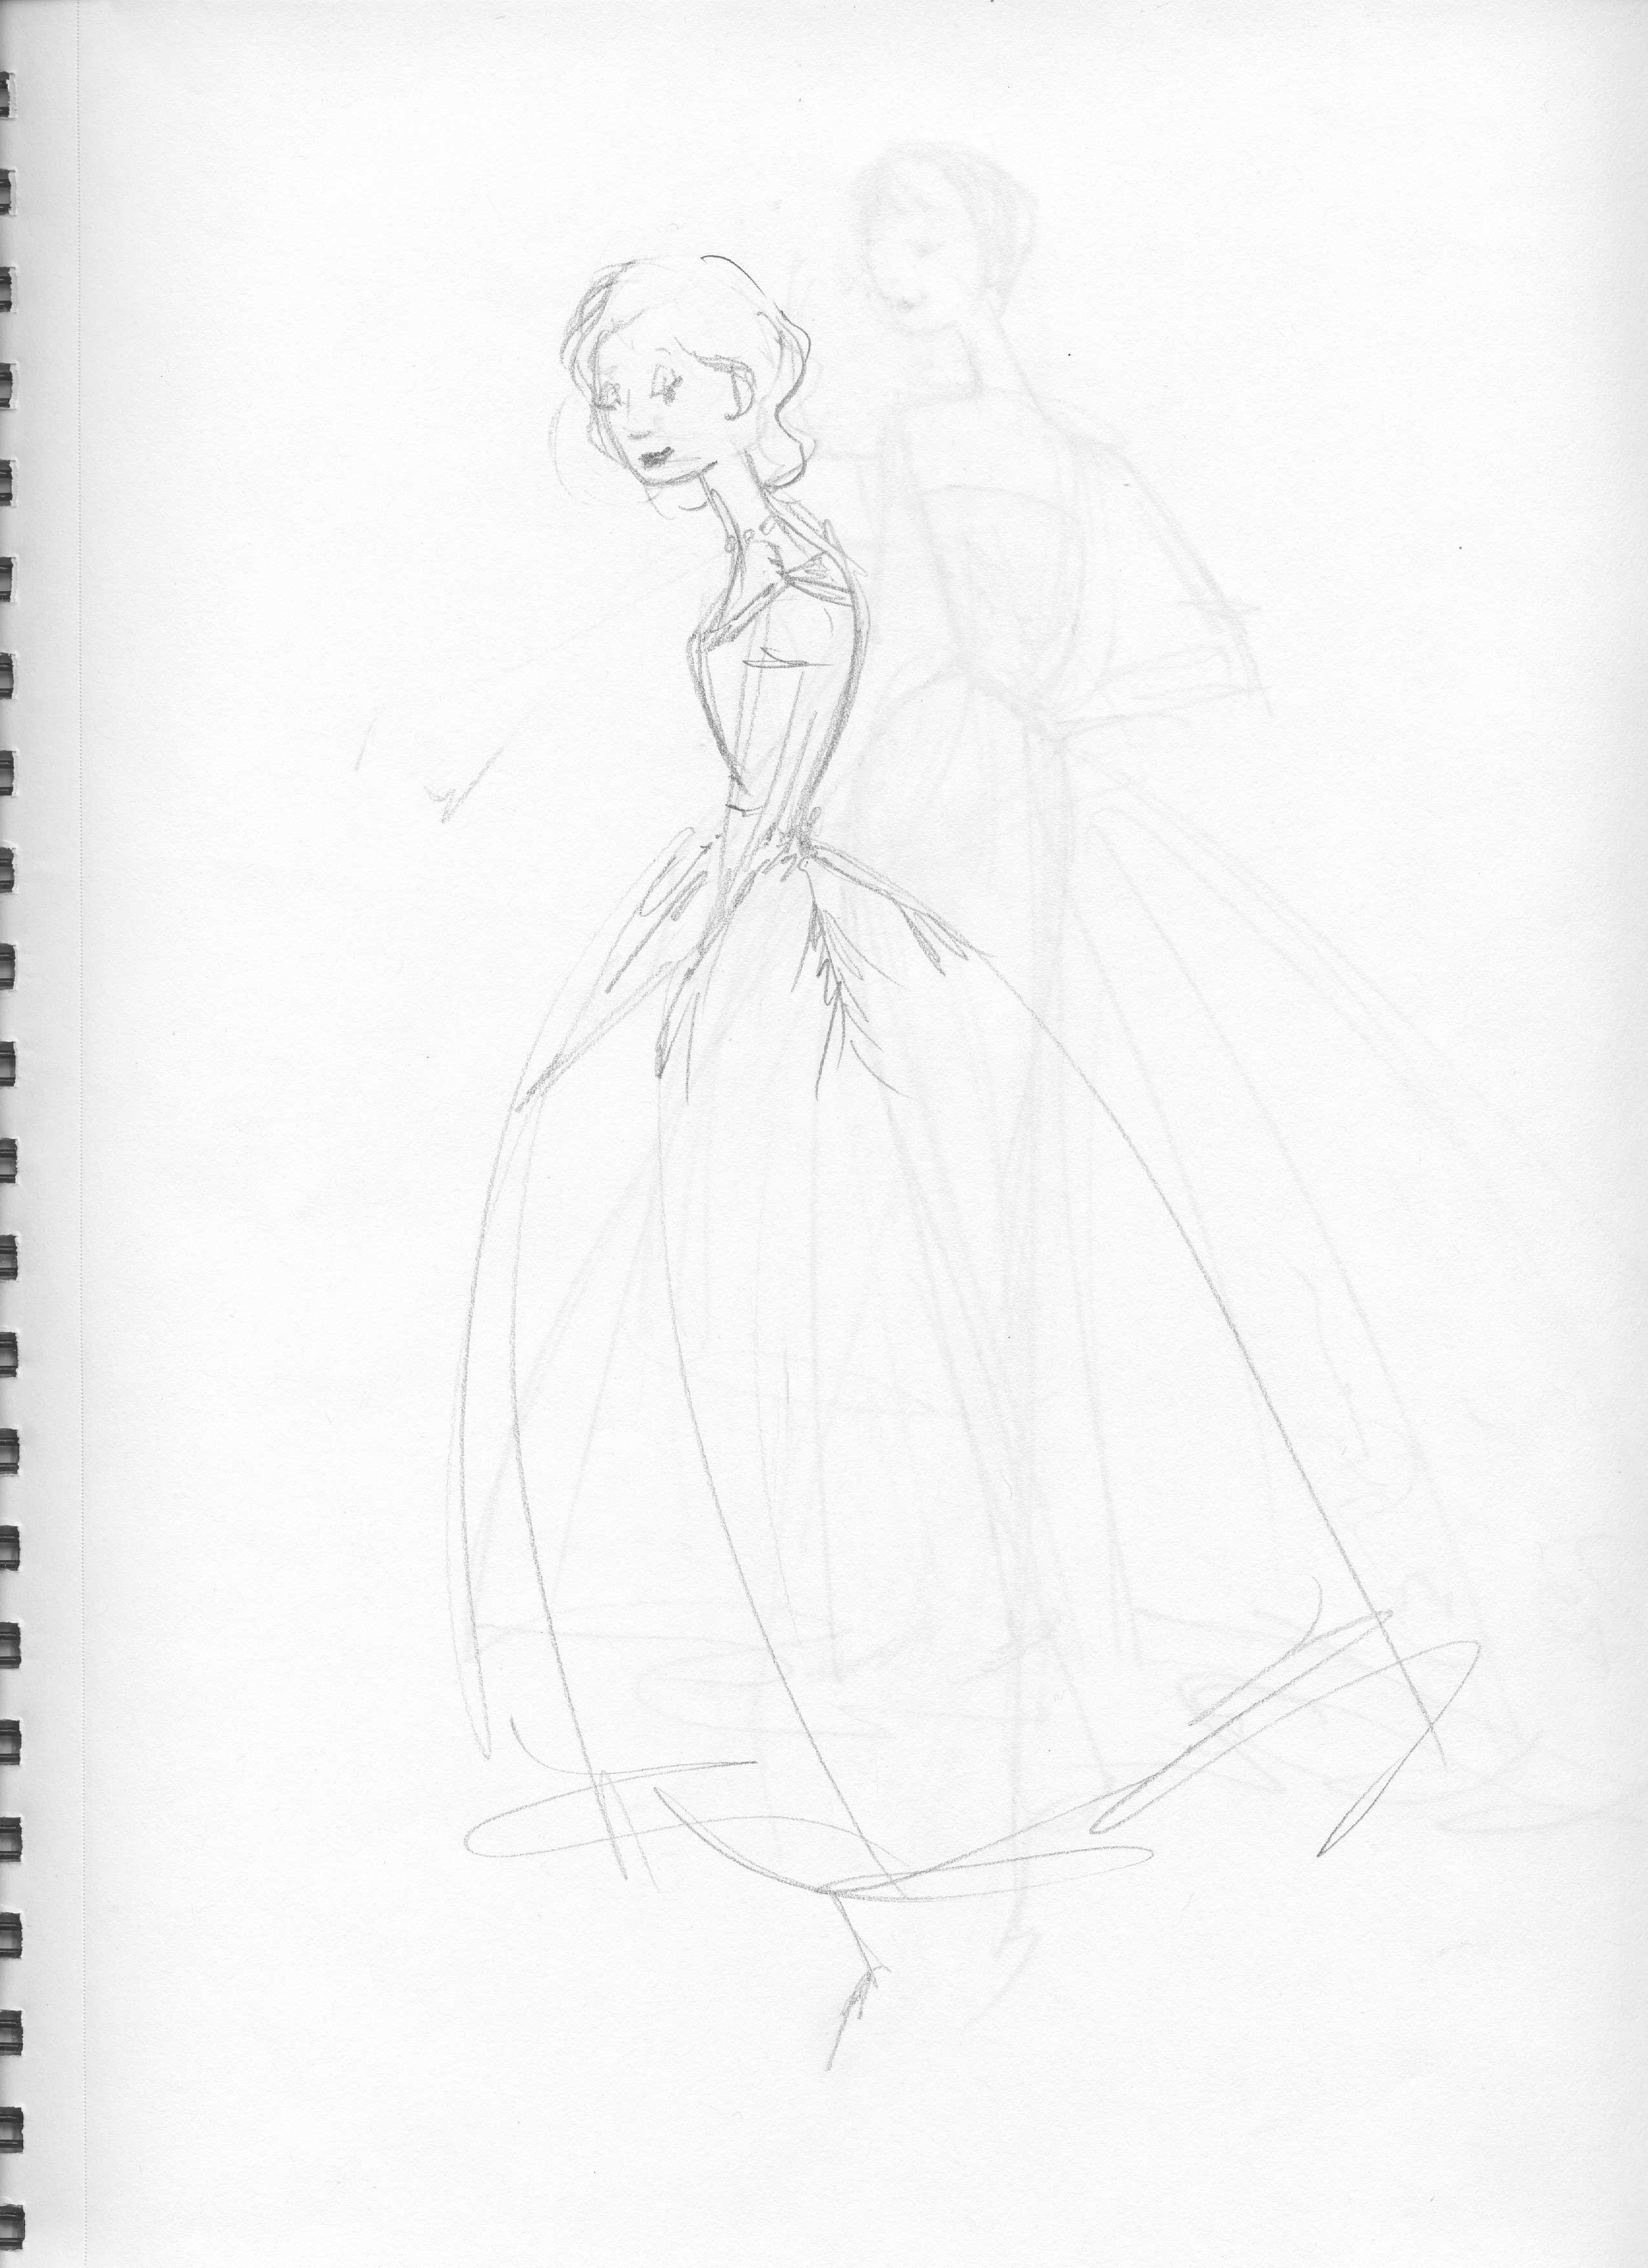 *(SKETCHES)* a walk down memory lane - image 22 - student project